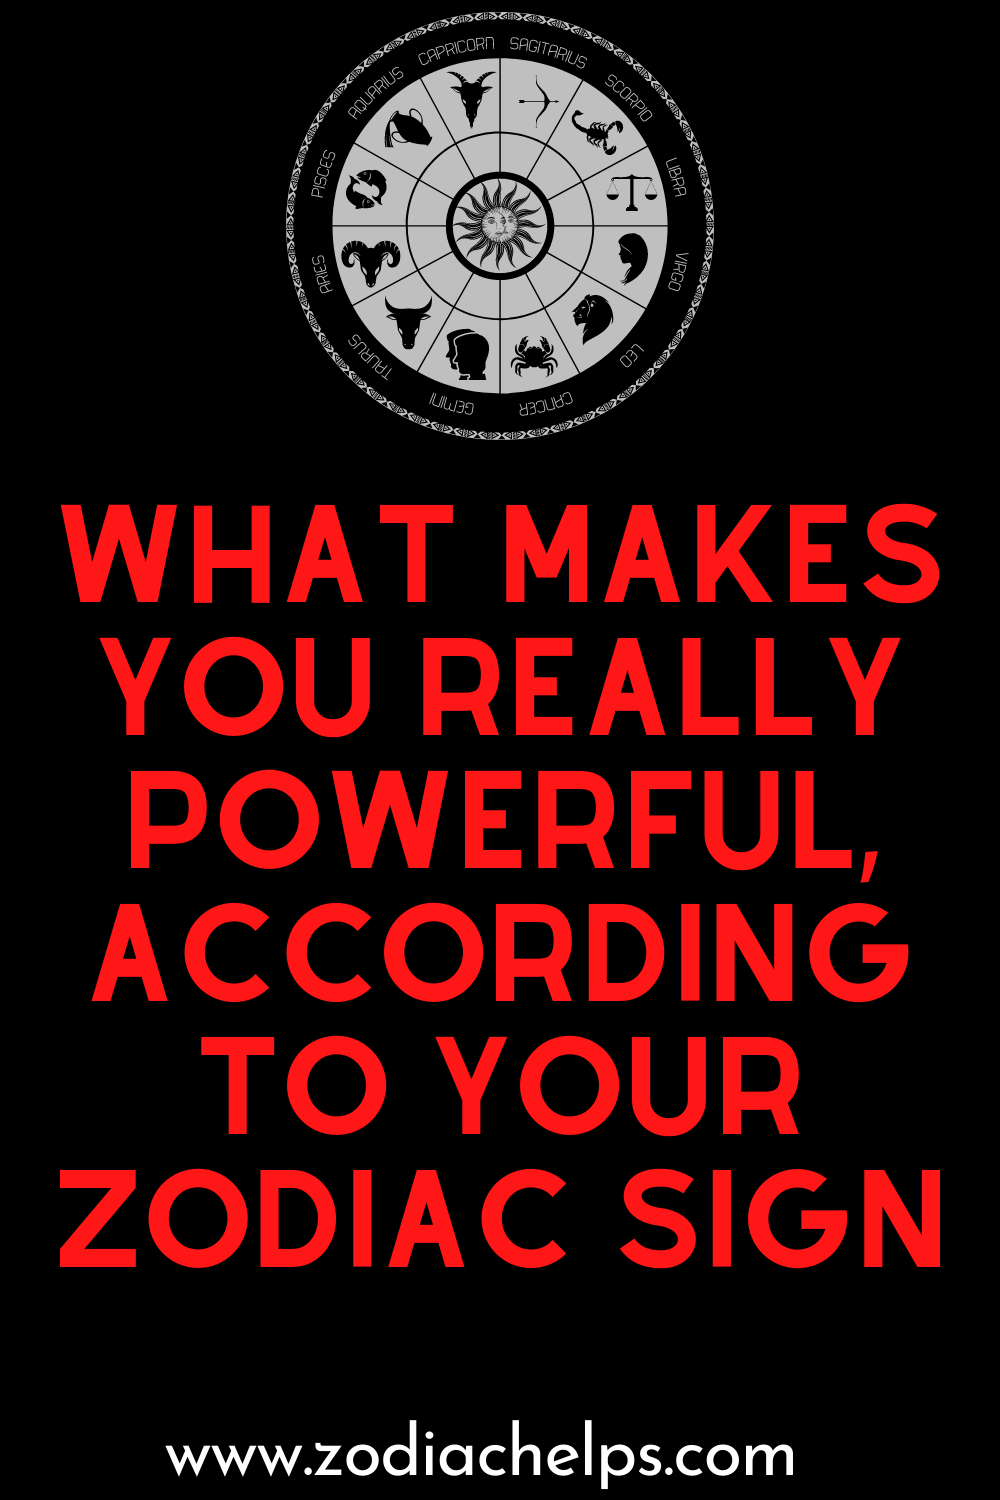 What Makes You Really Powerful, According to Your Zodiac Sign